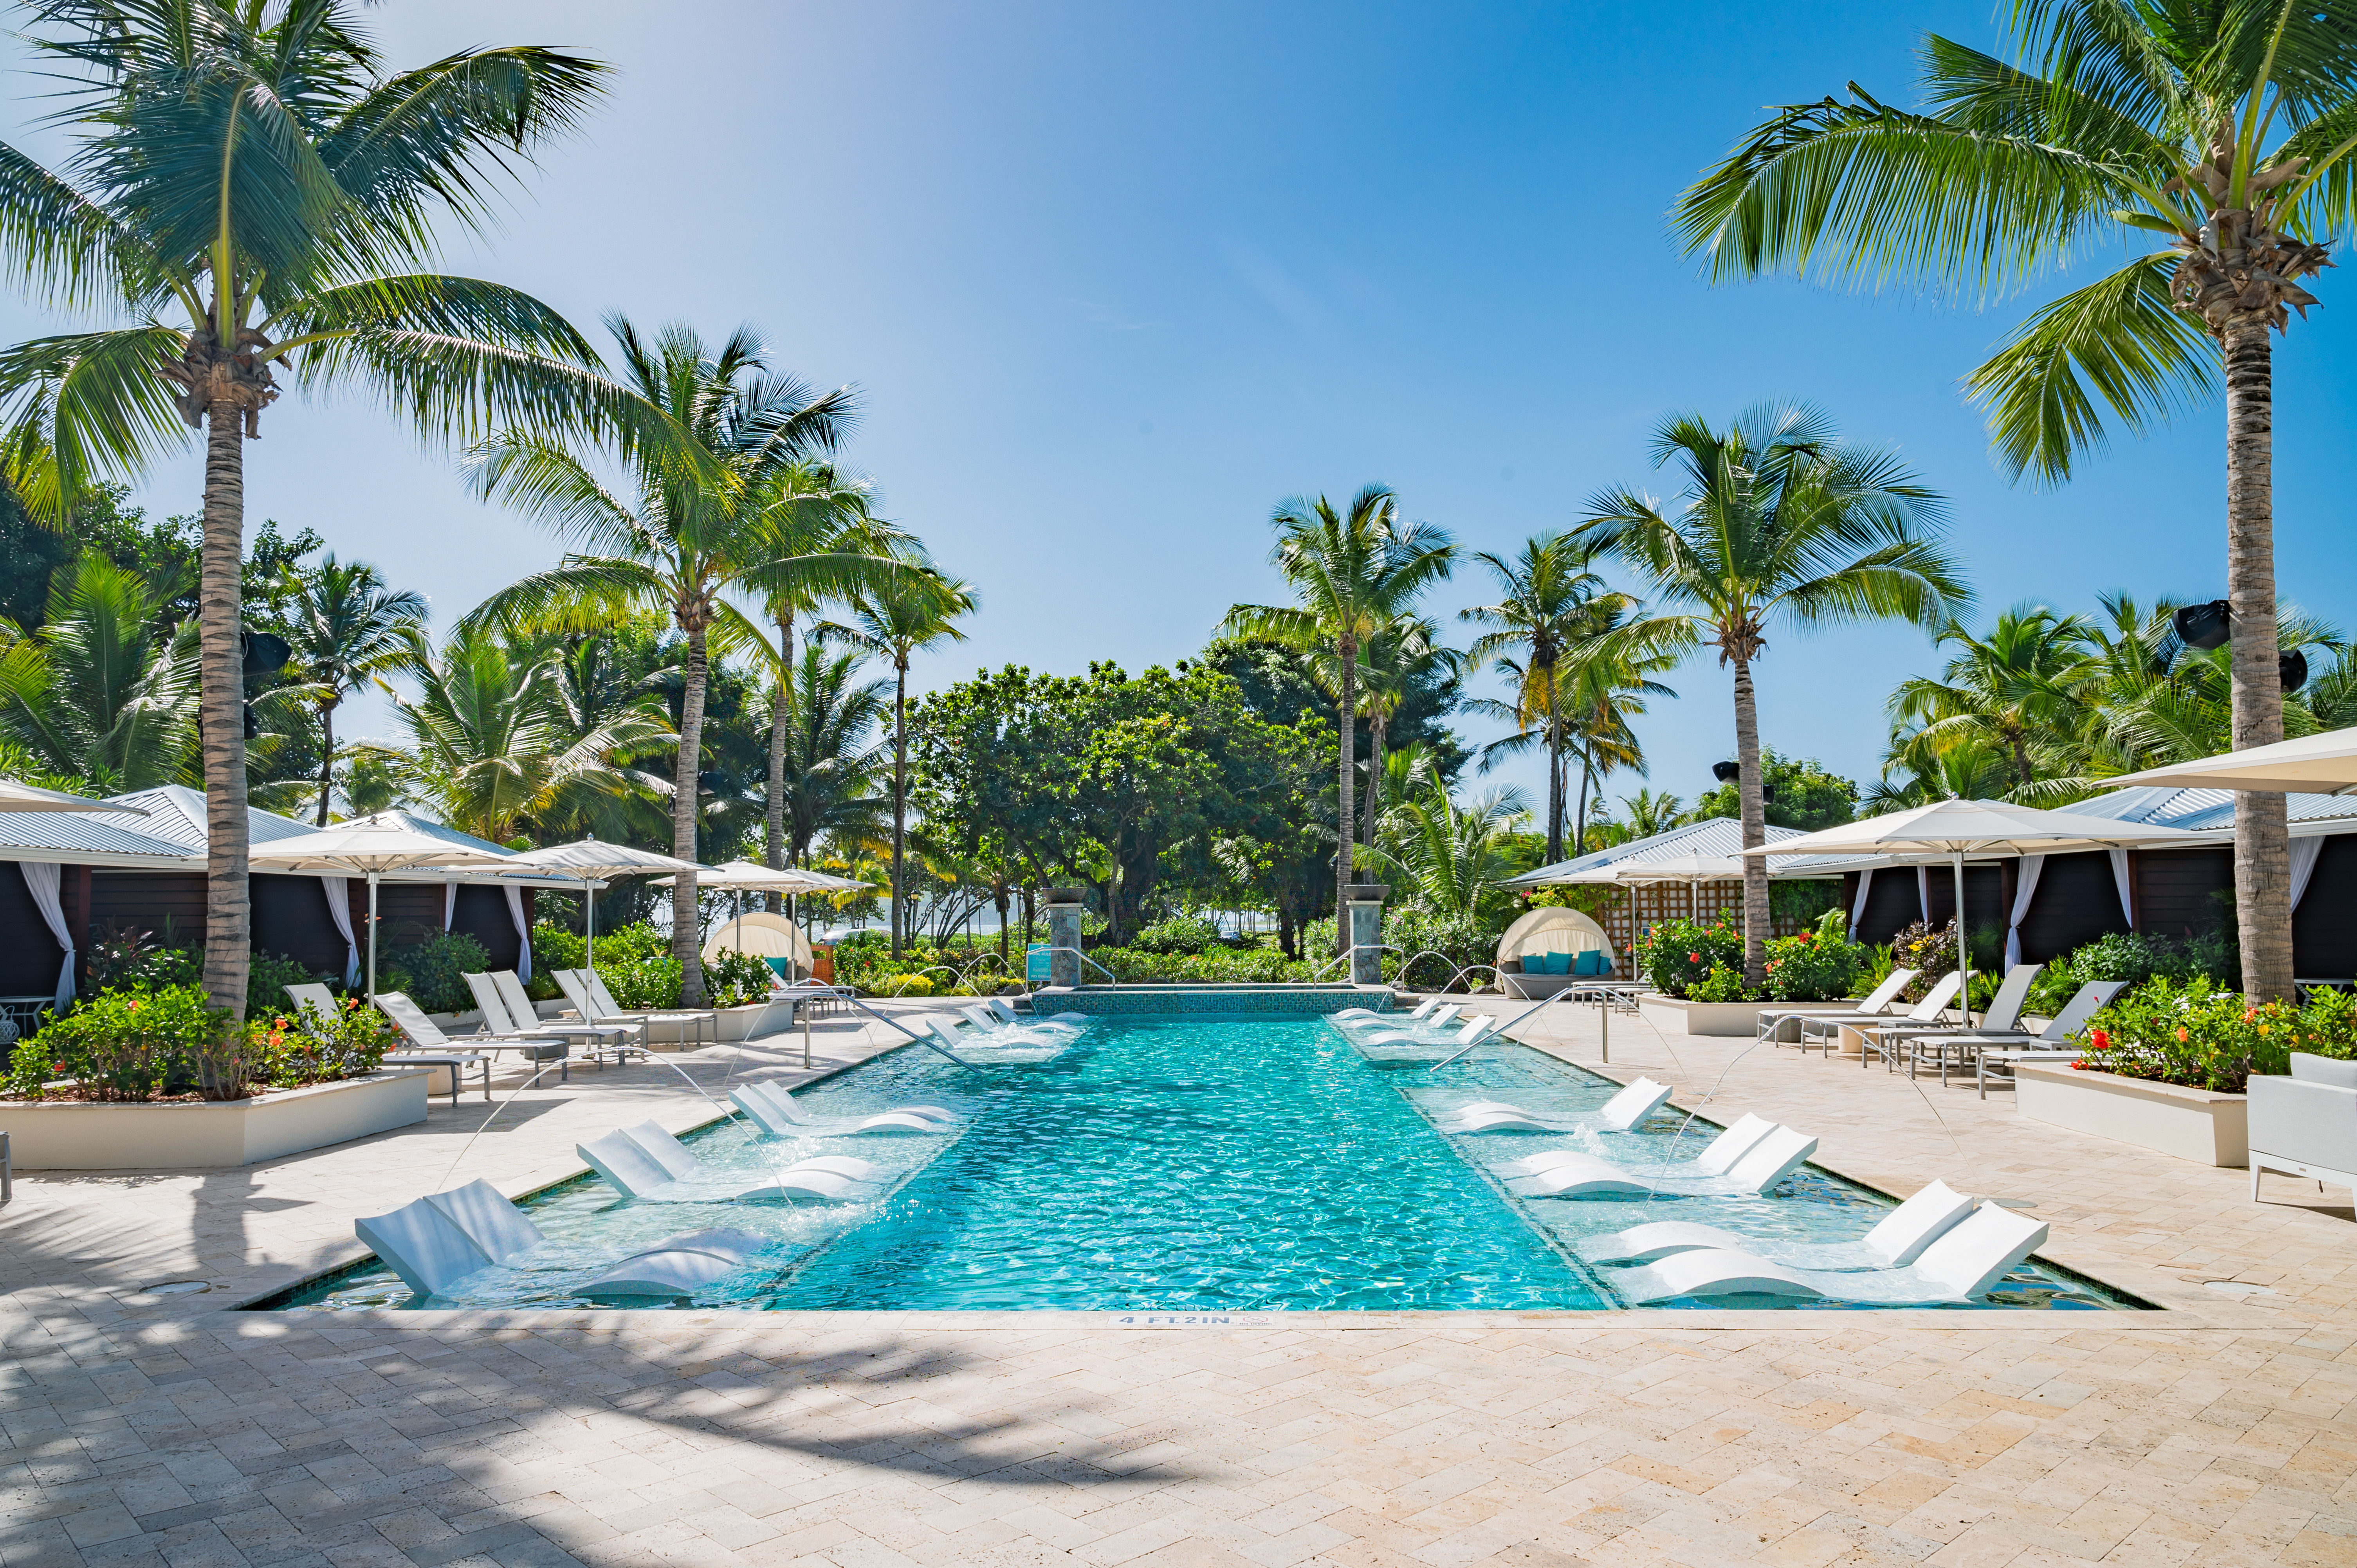 The Greathouse pool is magnificently designed and sparkles at the center of the property. Lounging around the in-pool loungers or private poolside cabanas is heavenly.